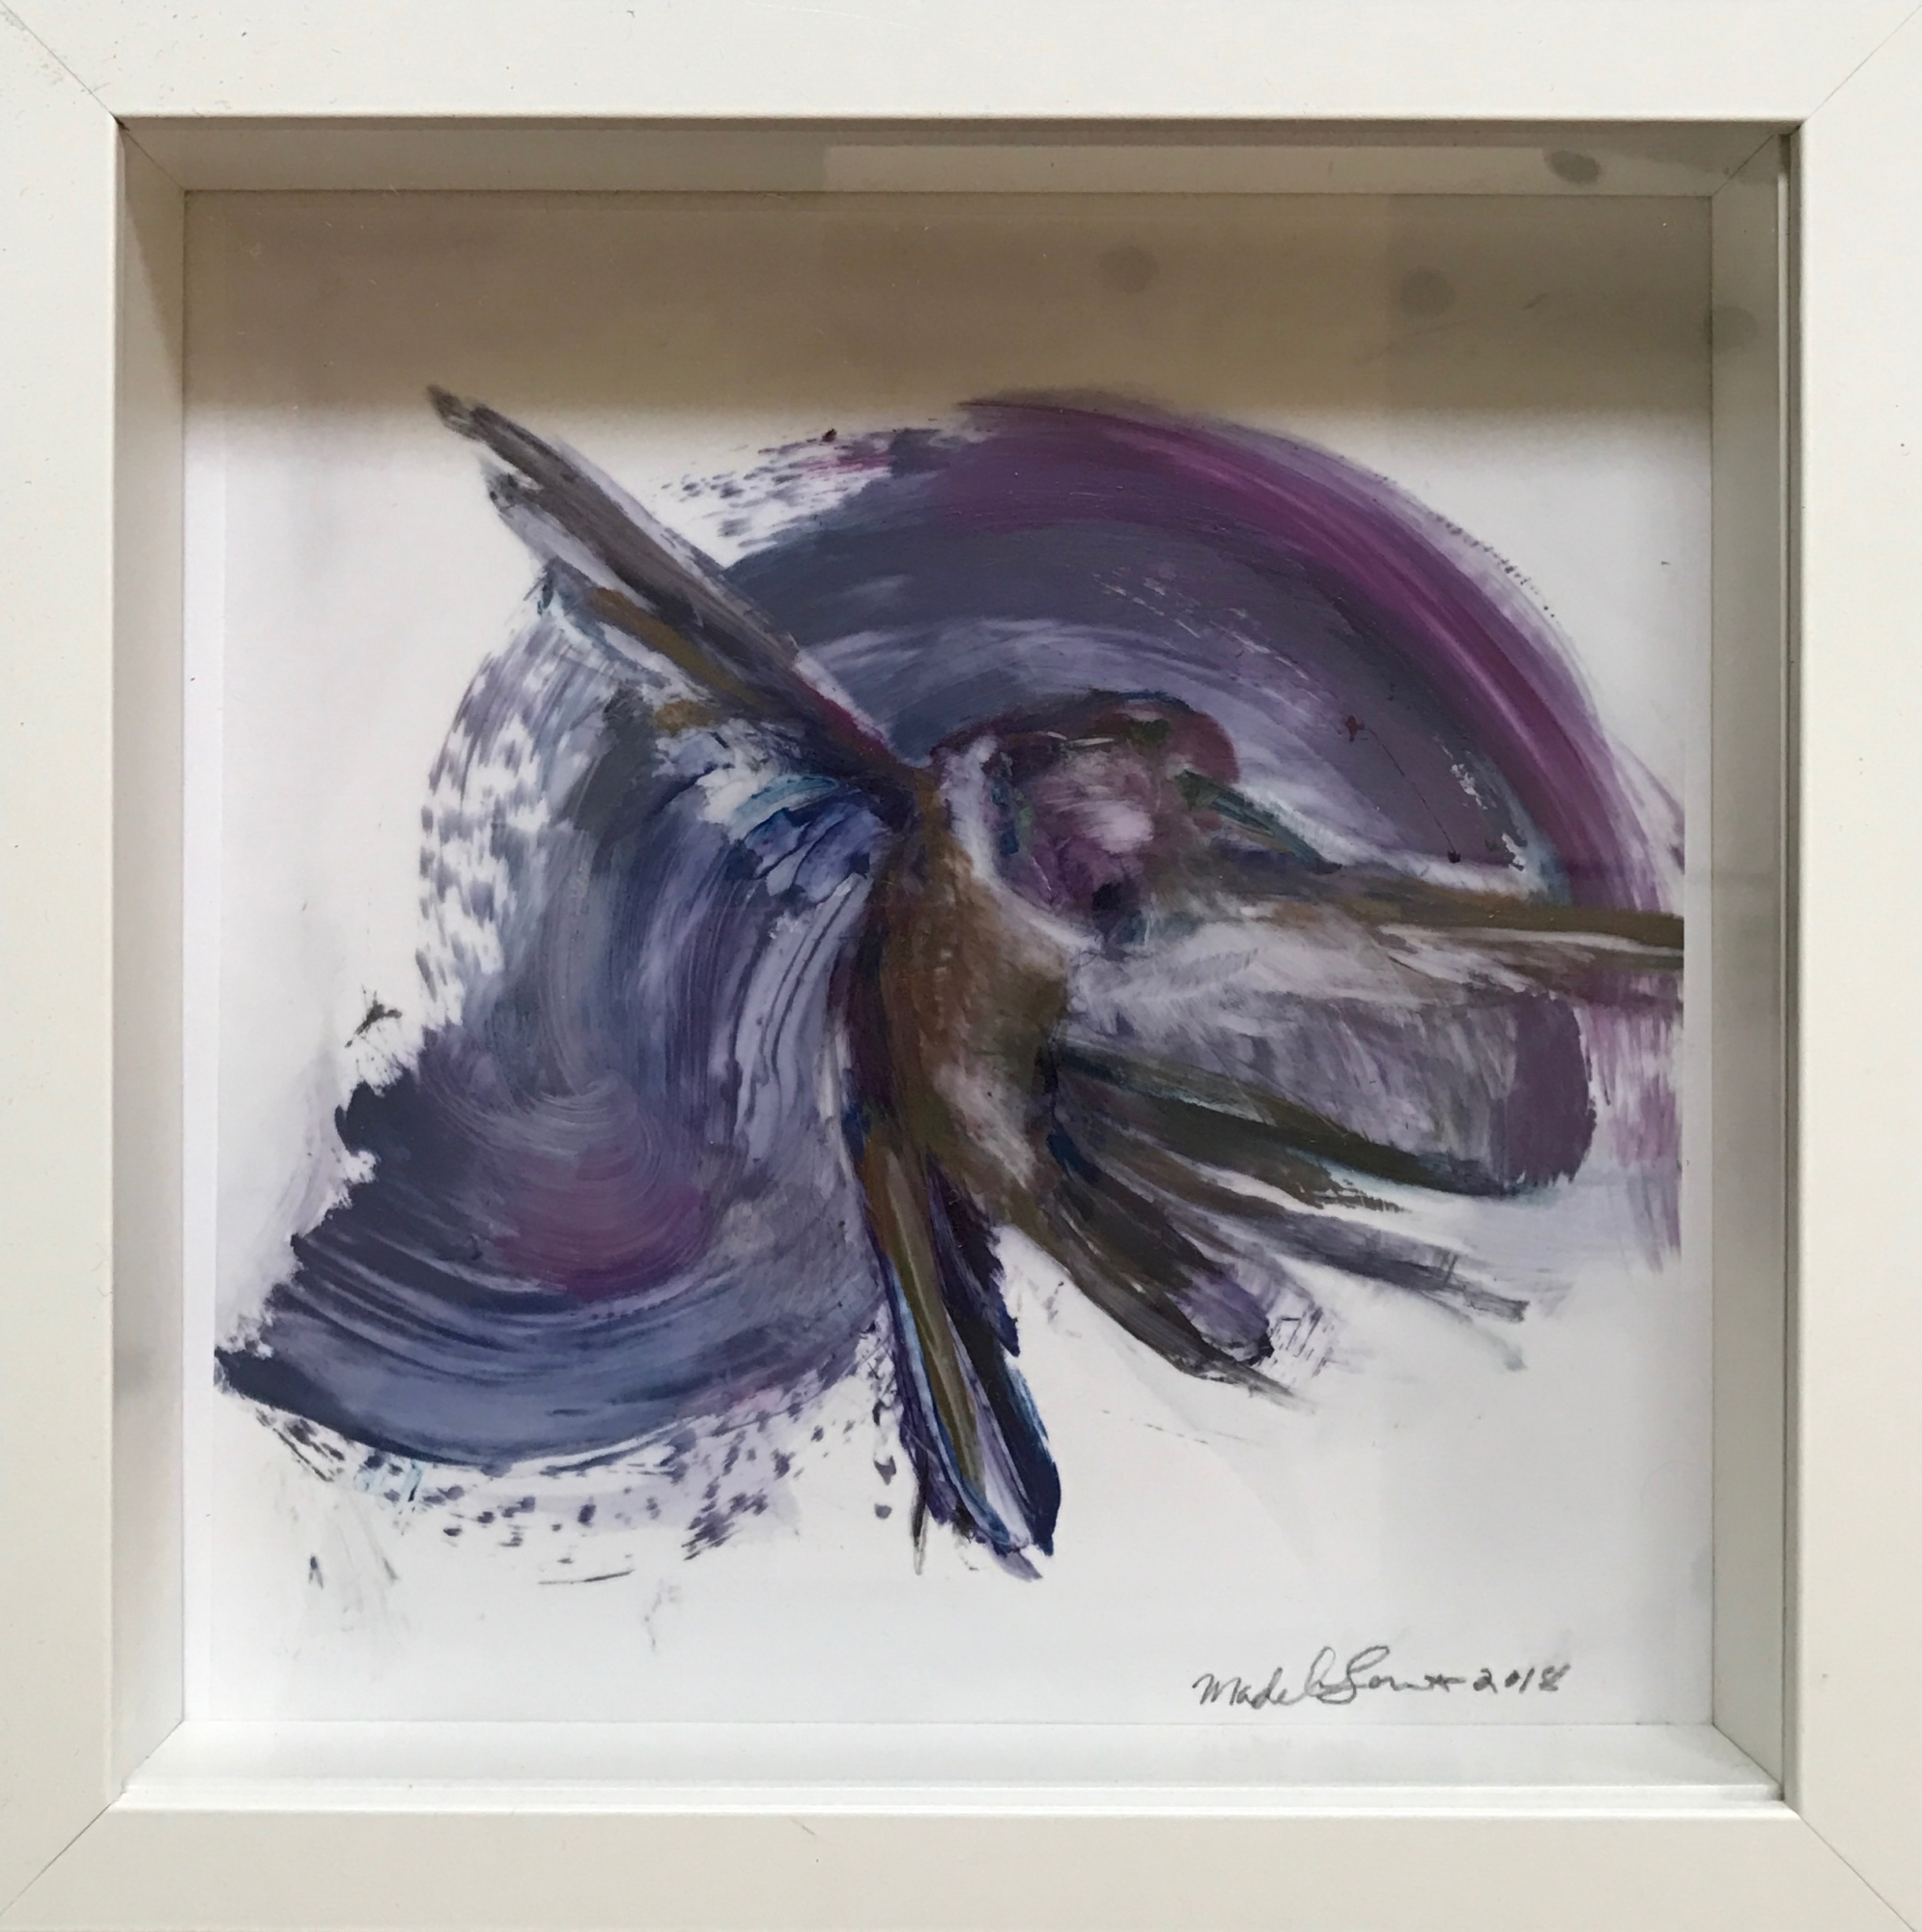 Hummingbird Small (framed) by Madeleine Lamont